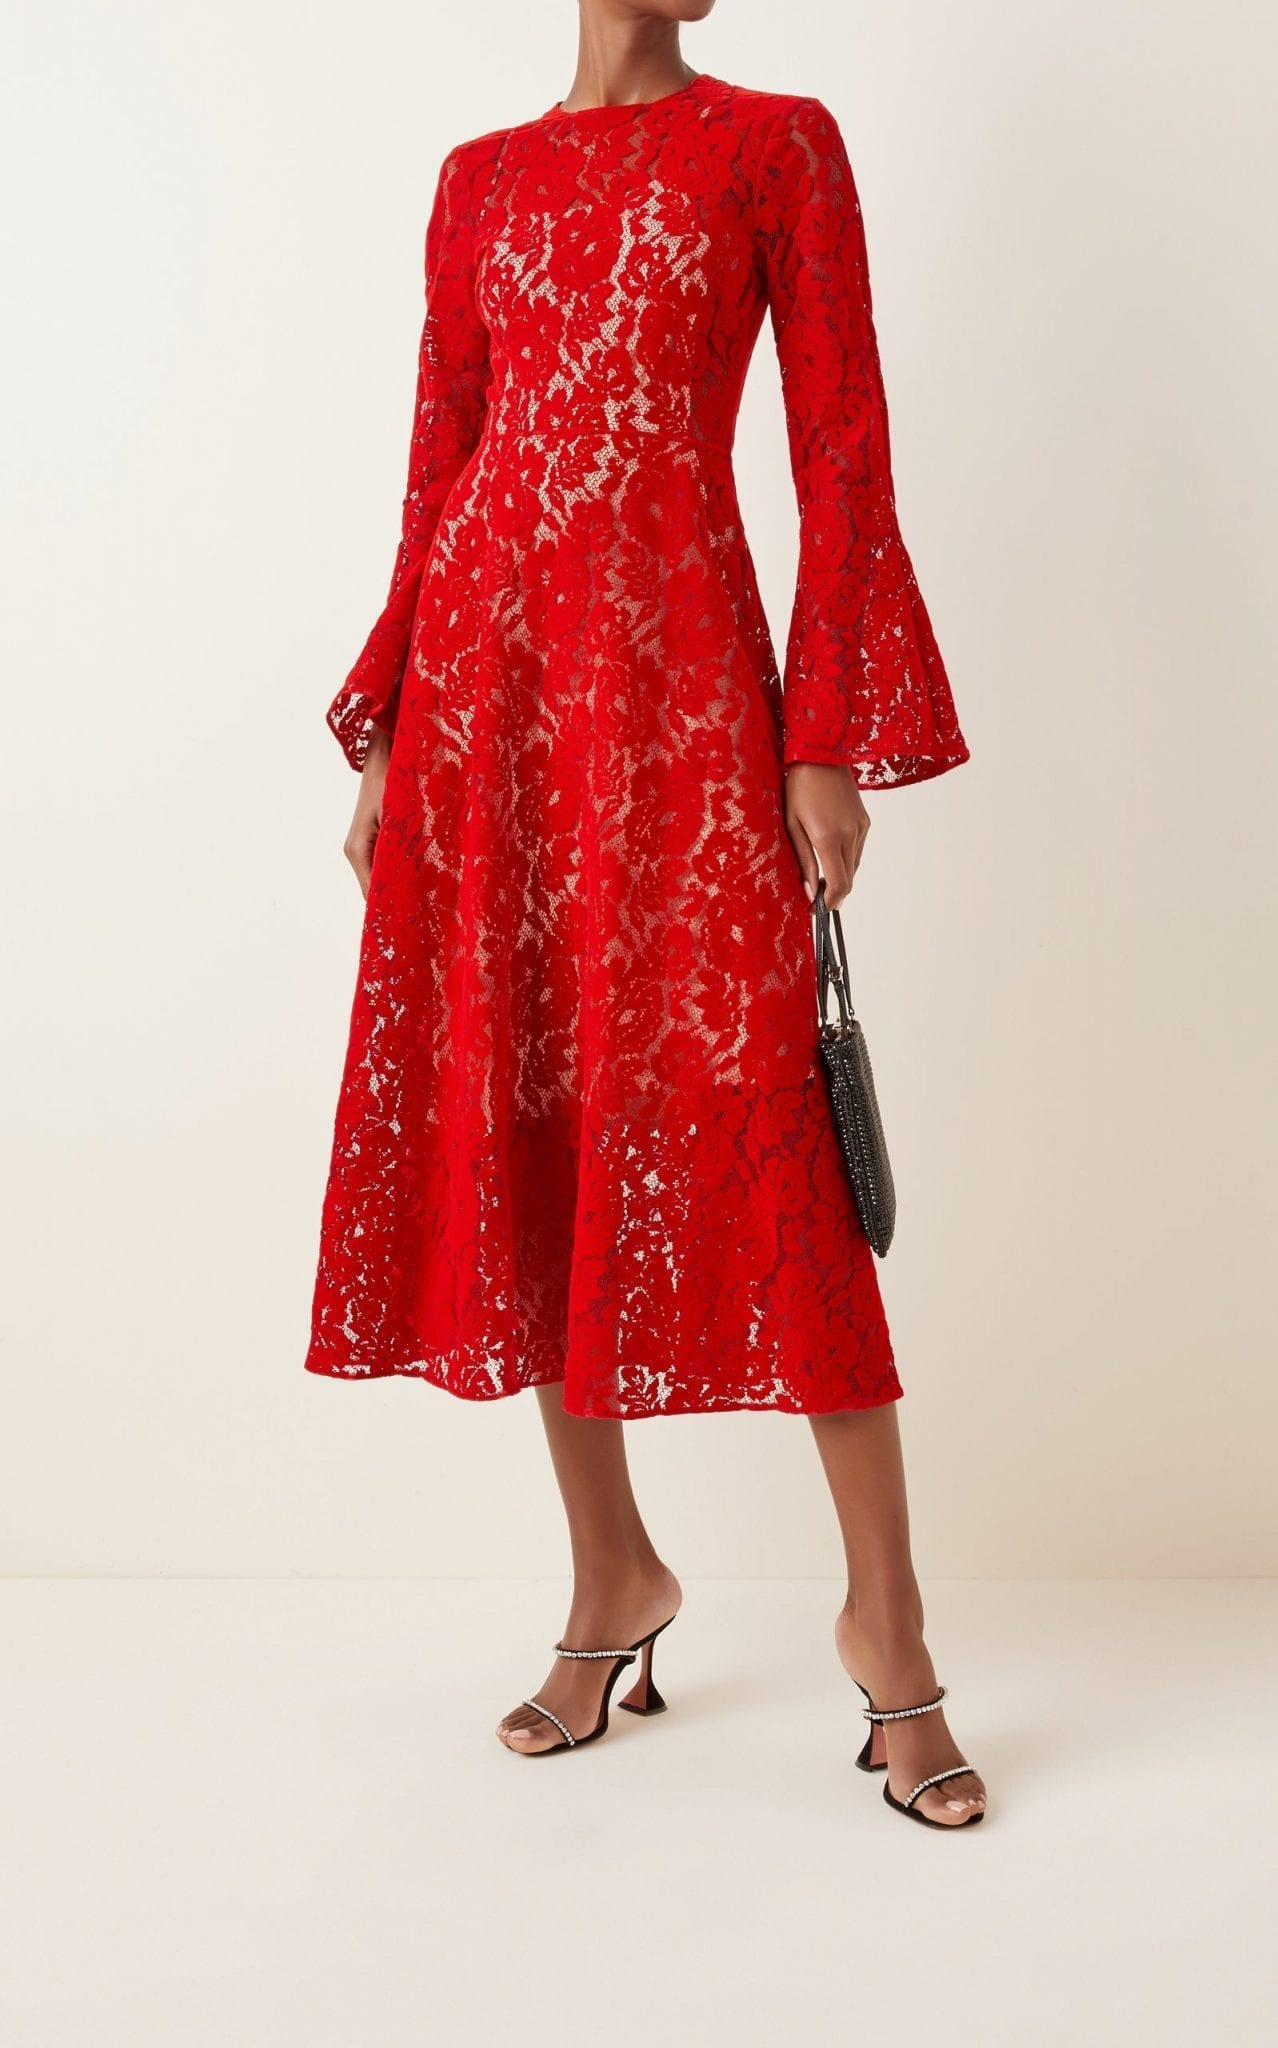 CHRISTOPHER KANE Flocked Lace Midi Dress